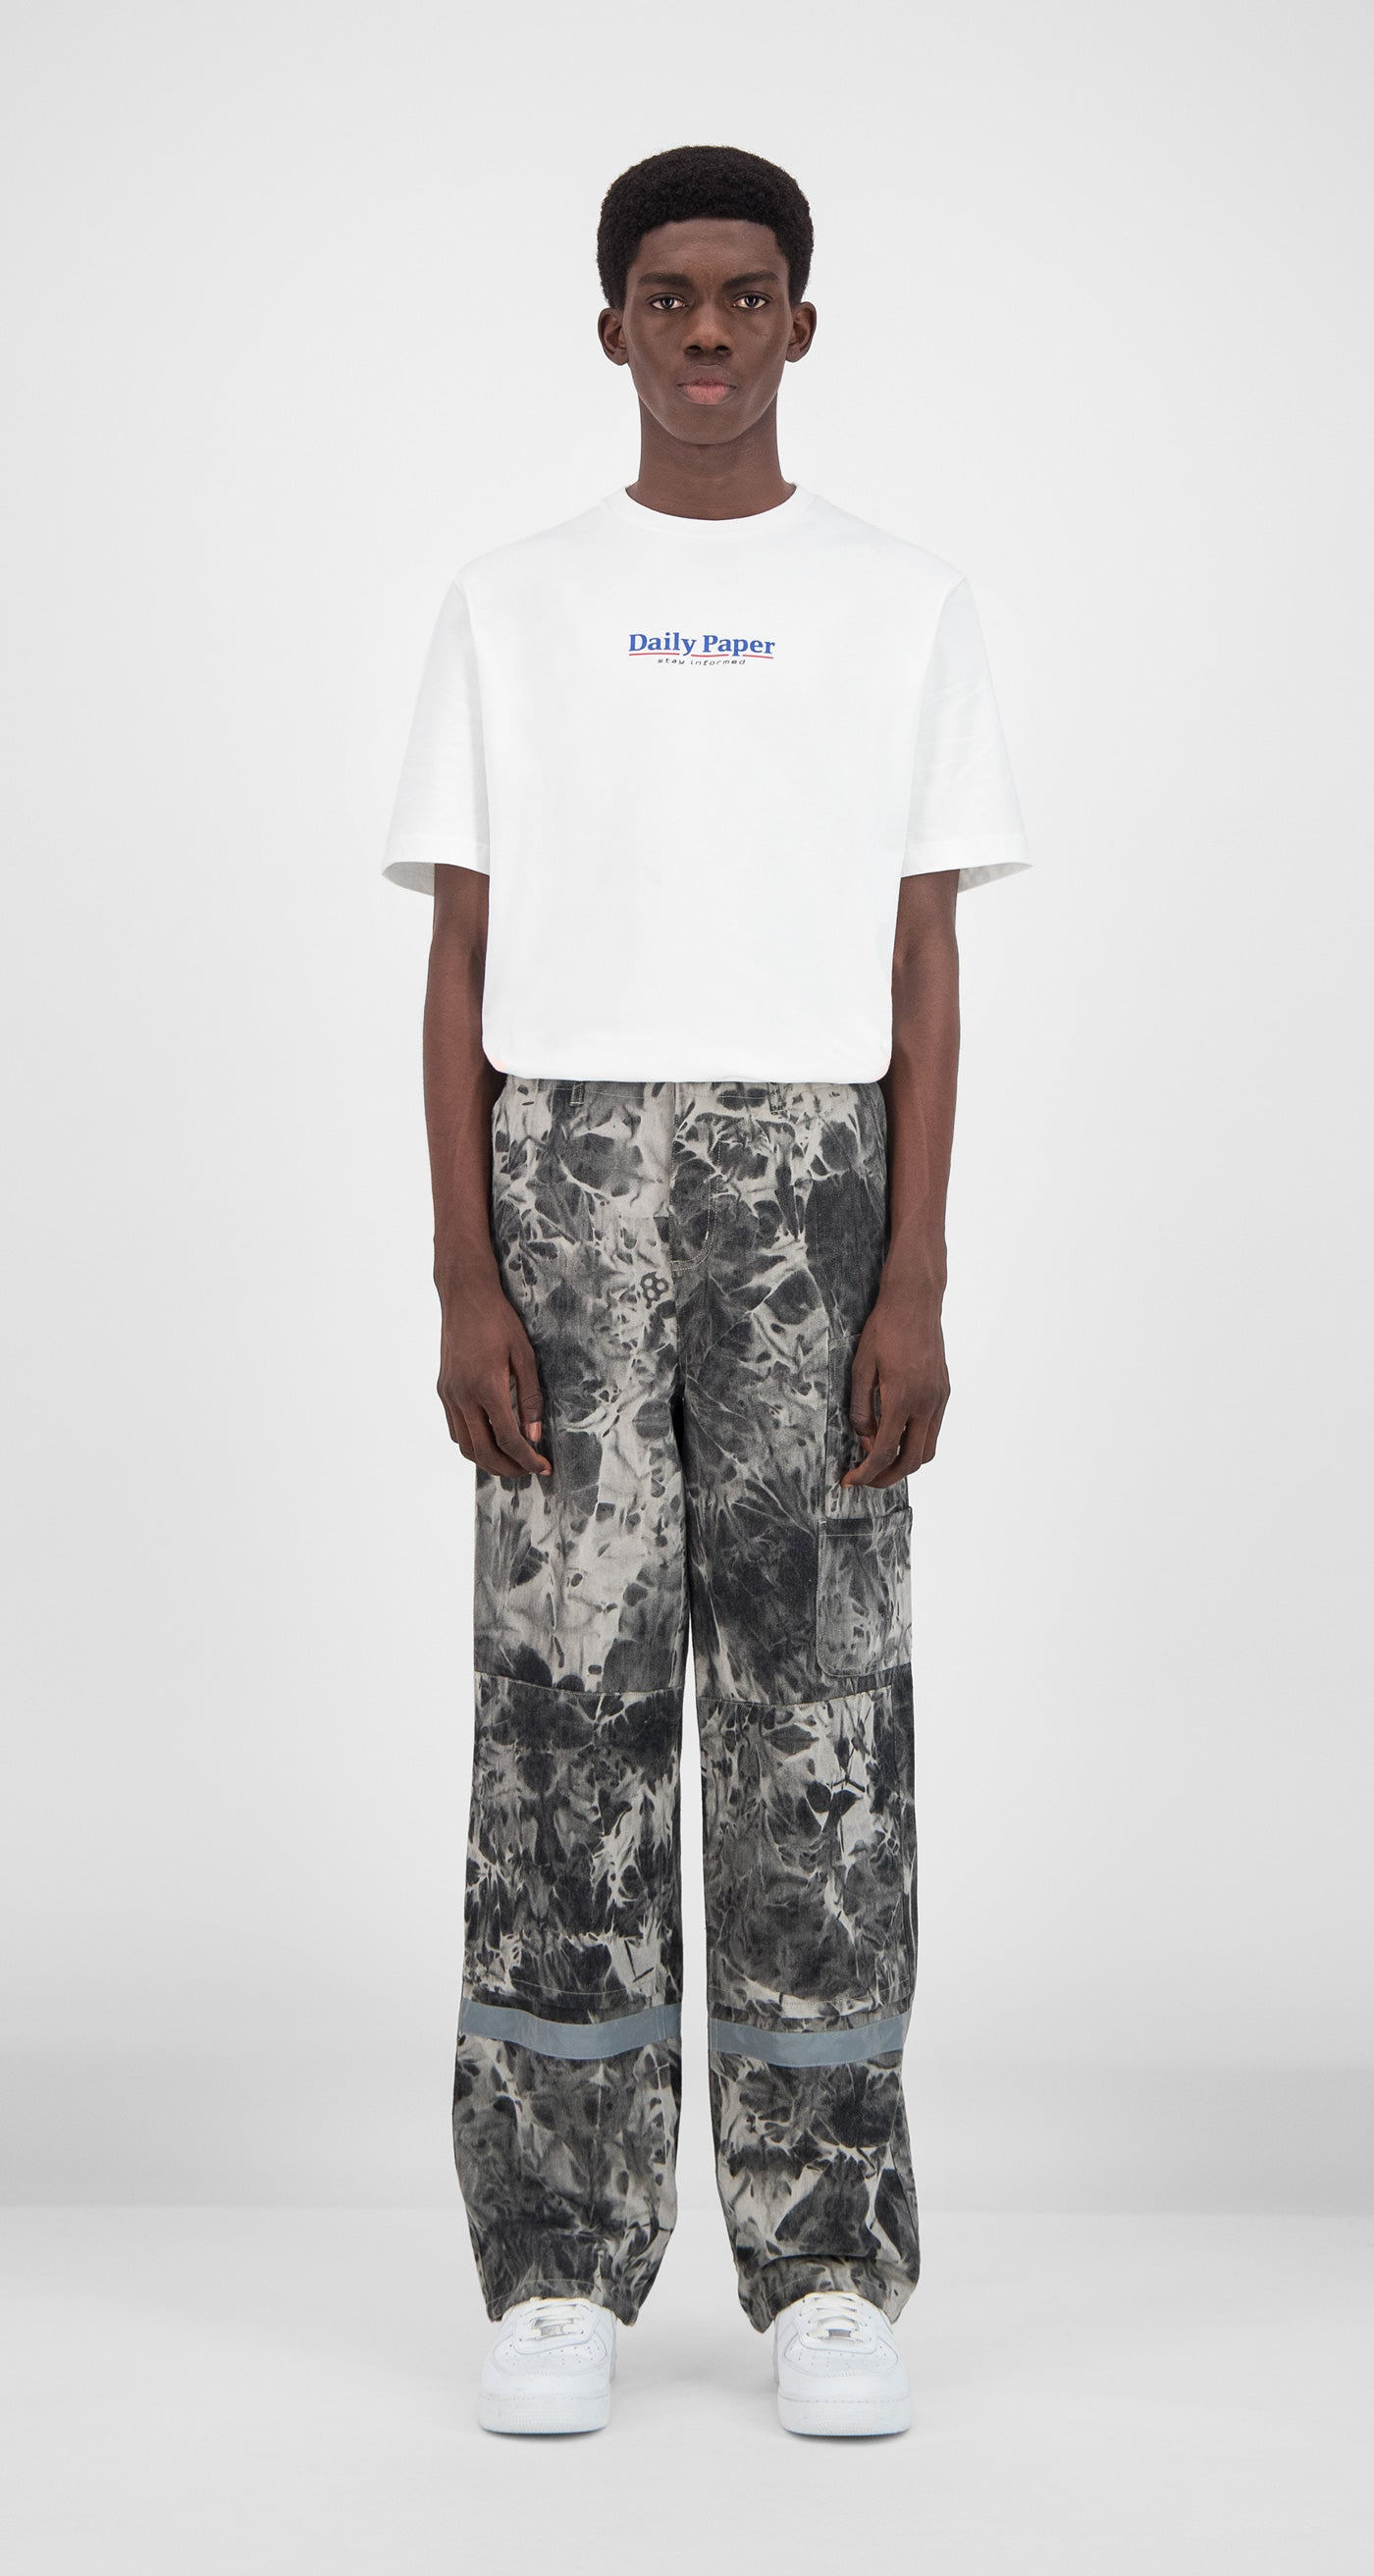 Daily Paper - Grey Tie Dye Gefac Pants Men Front